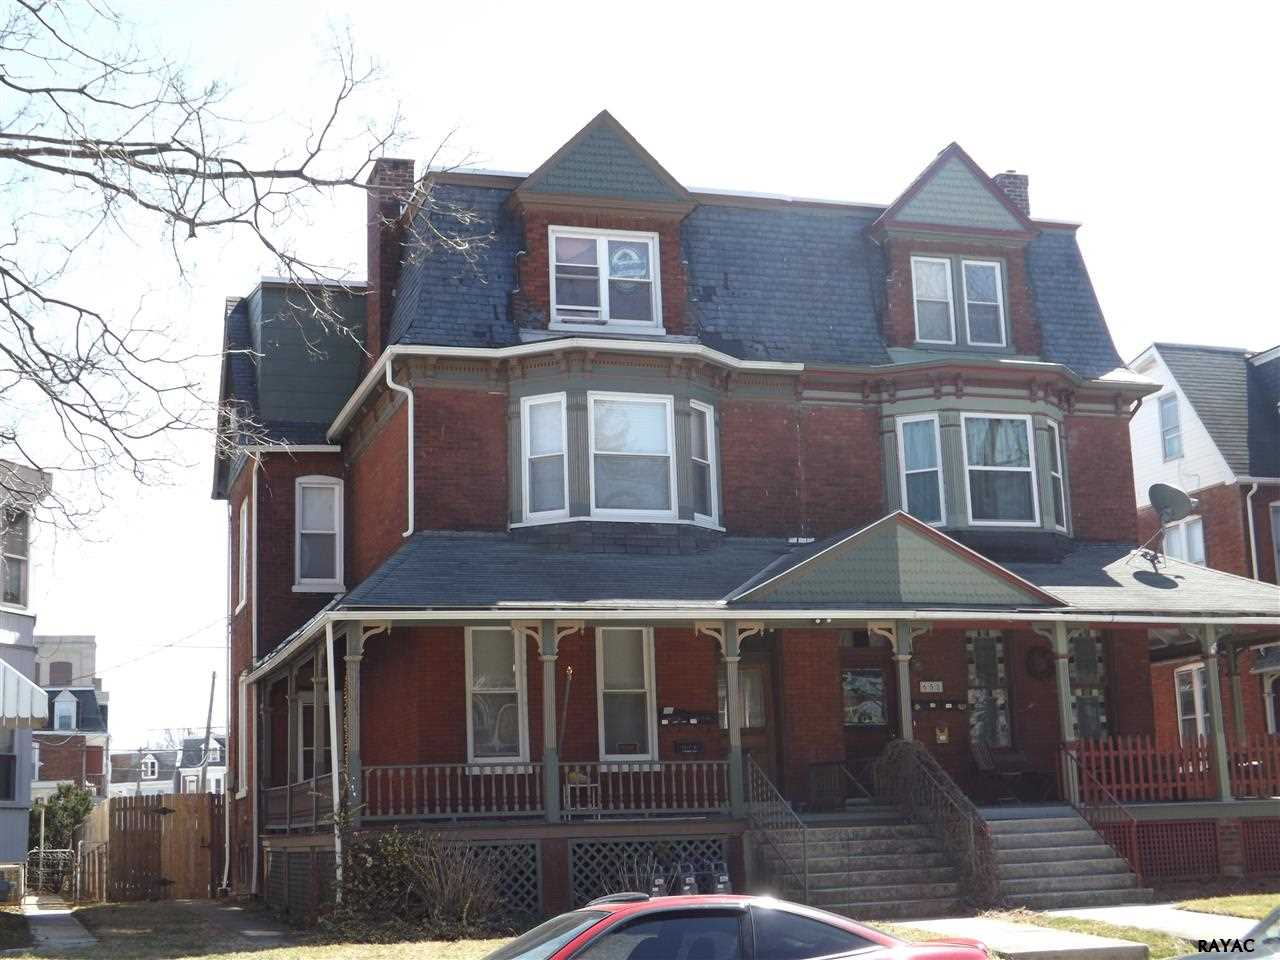 656 Linden Ave, York, PA 17404